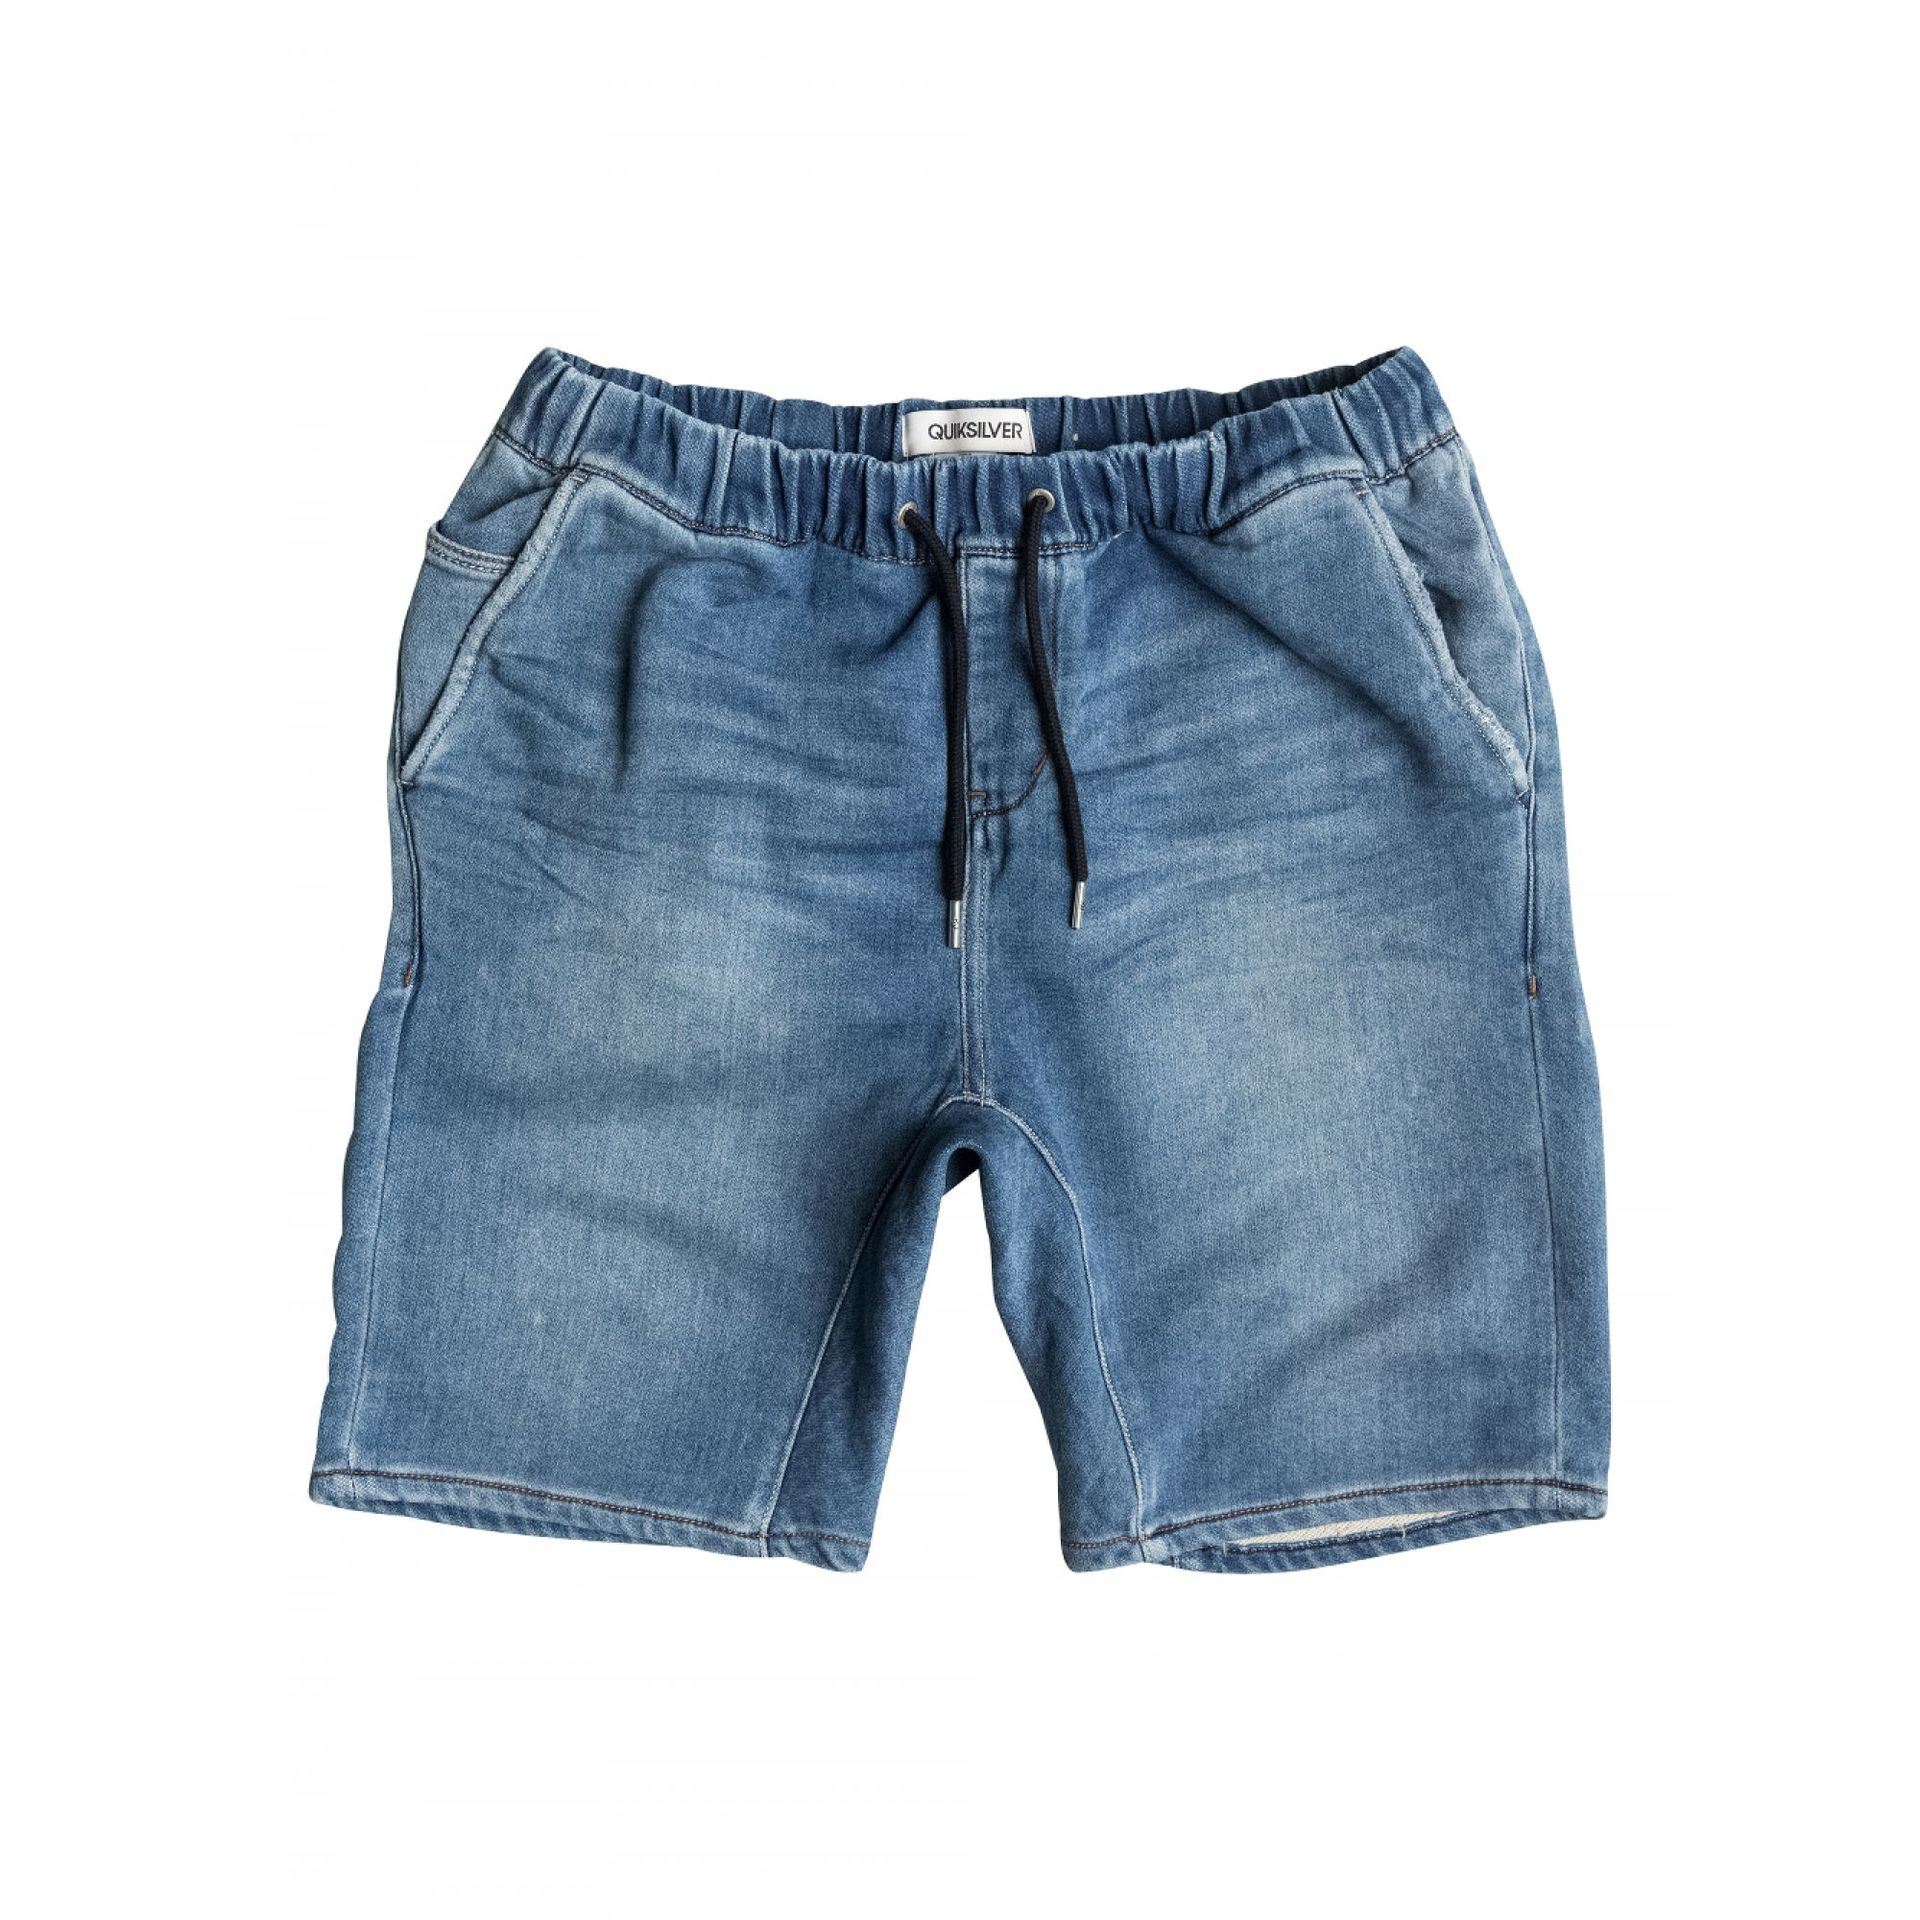 SPODENKI QUIKSILVER FONIC DENIM FLEECE SHORT 0